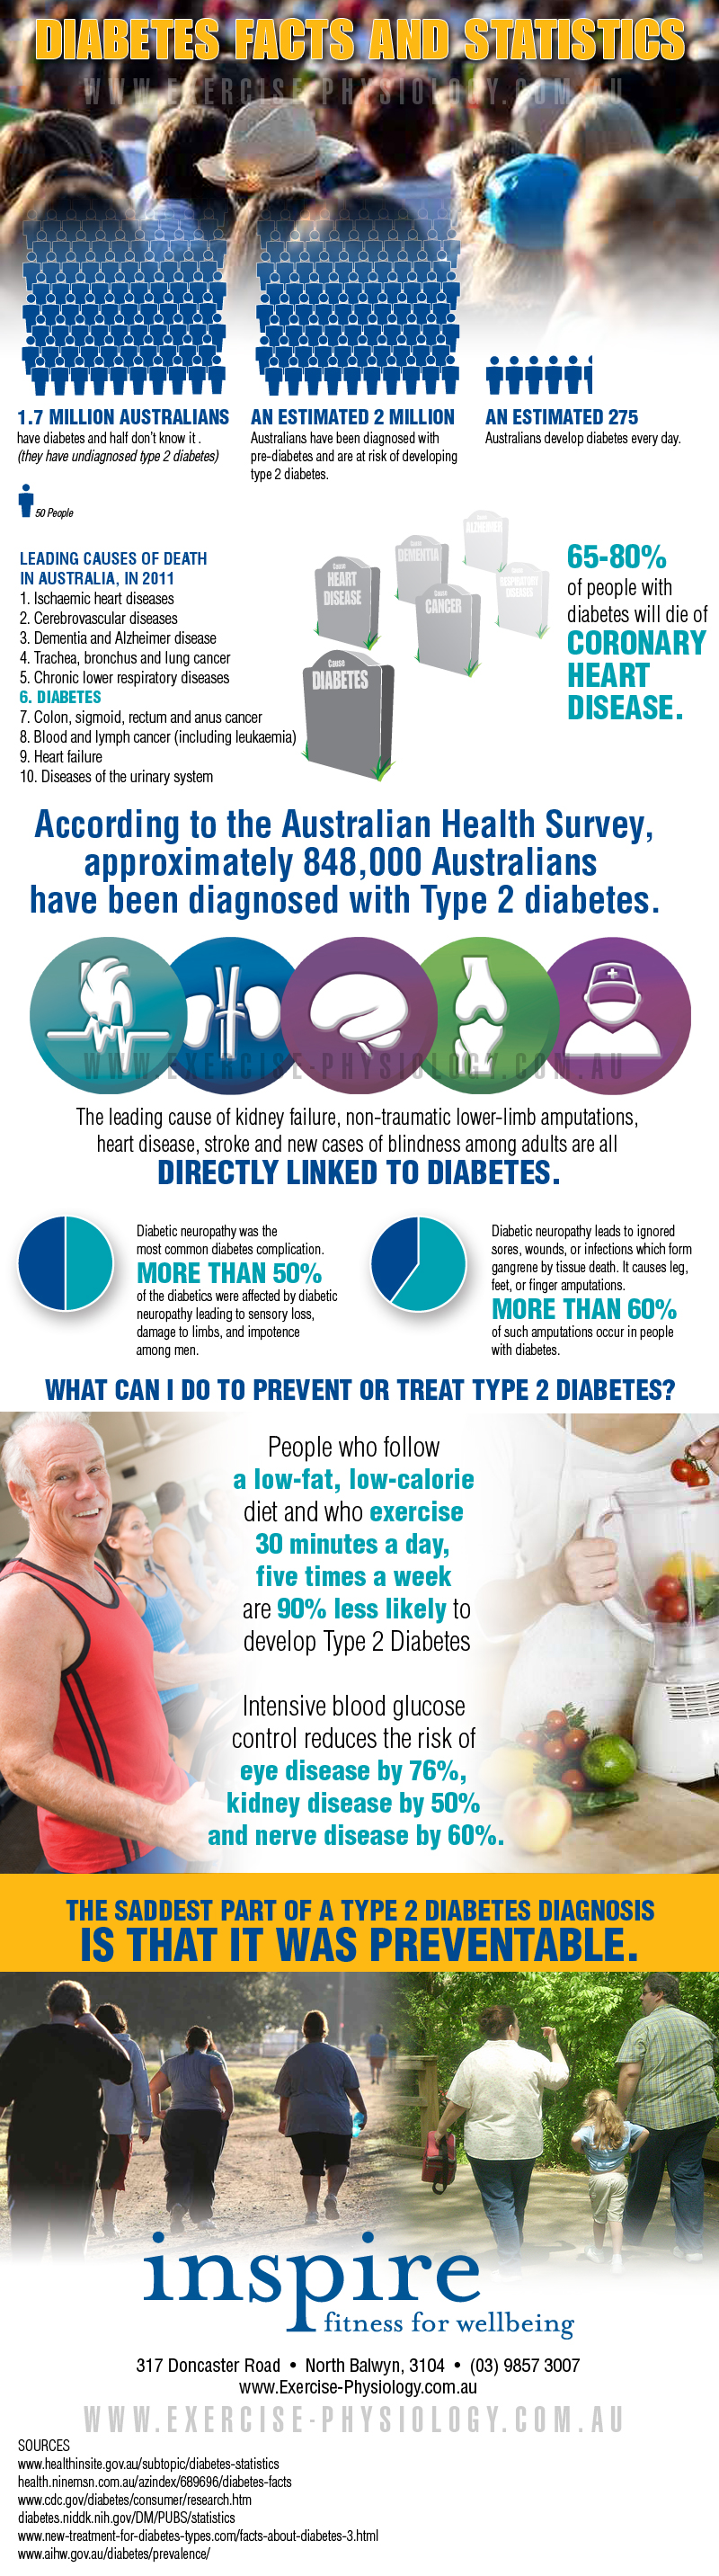 Diabetes Facts and Statistics - Infographic | Inspire Fitness for Wellbeing